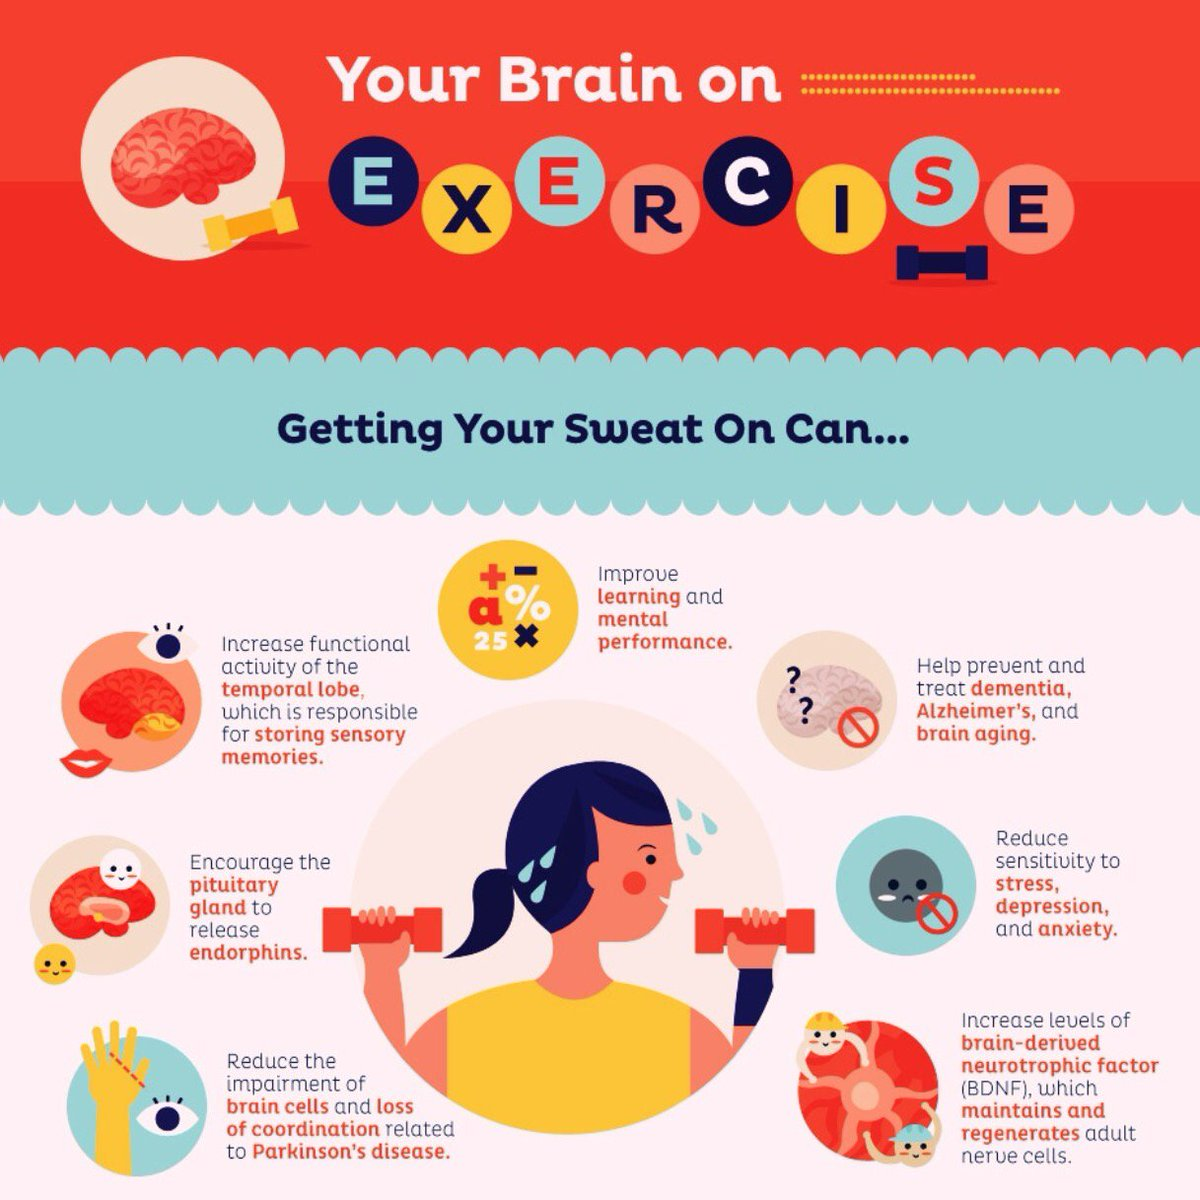 utm hcc on our moveu crew is out today talking to  utm hcc on our moveu crew is out today talking to students abt how physical activity can help curb stress this cute little infographic tells you